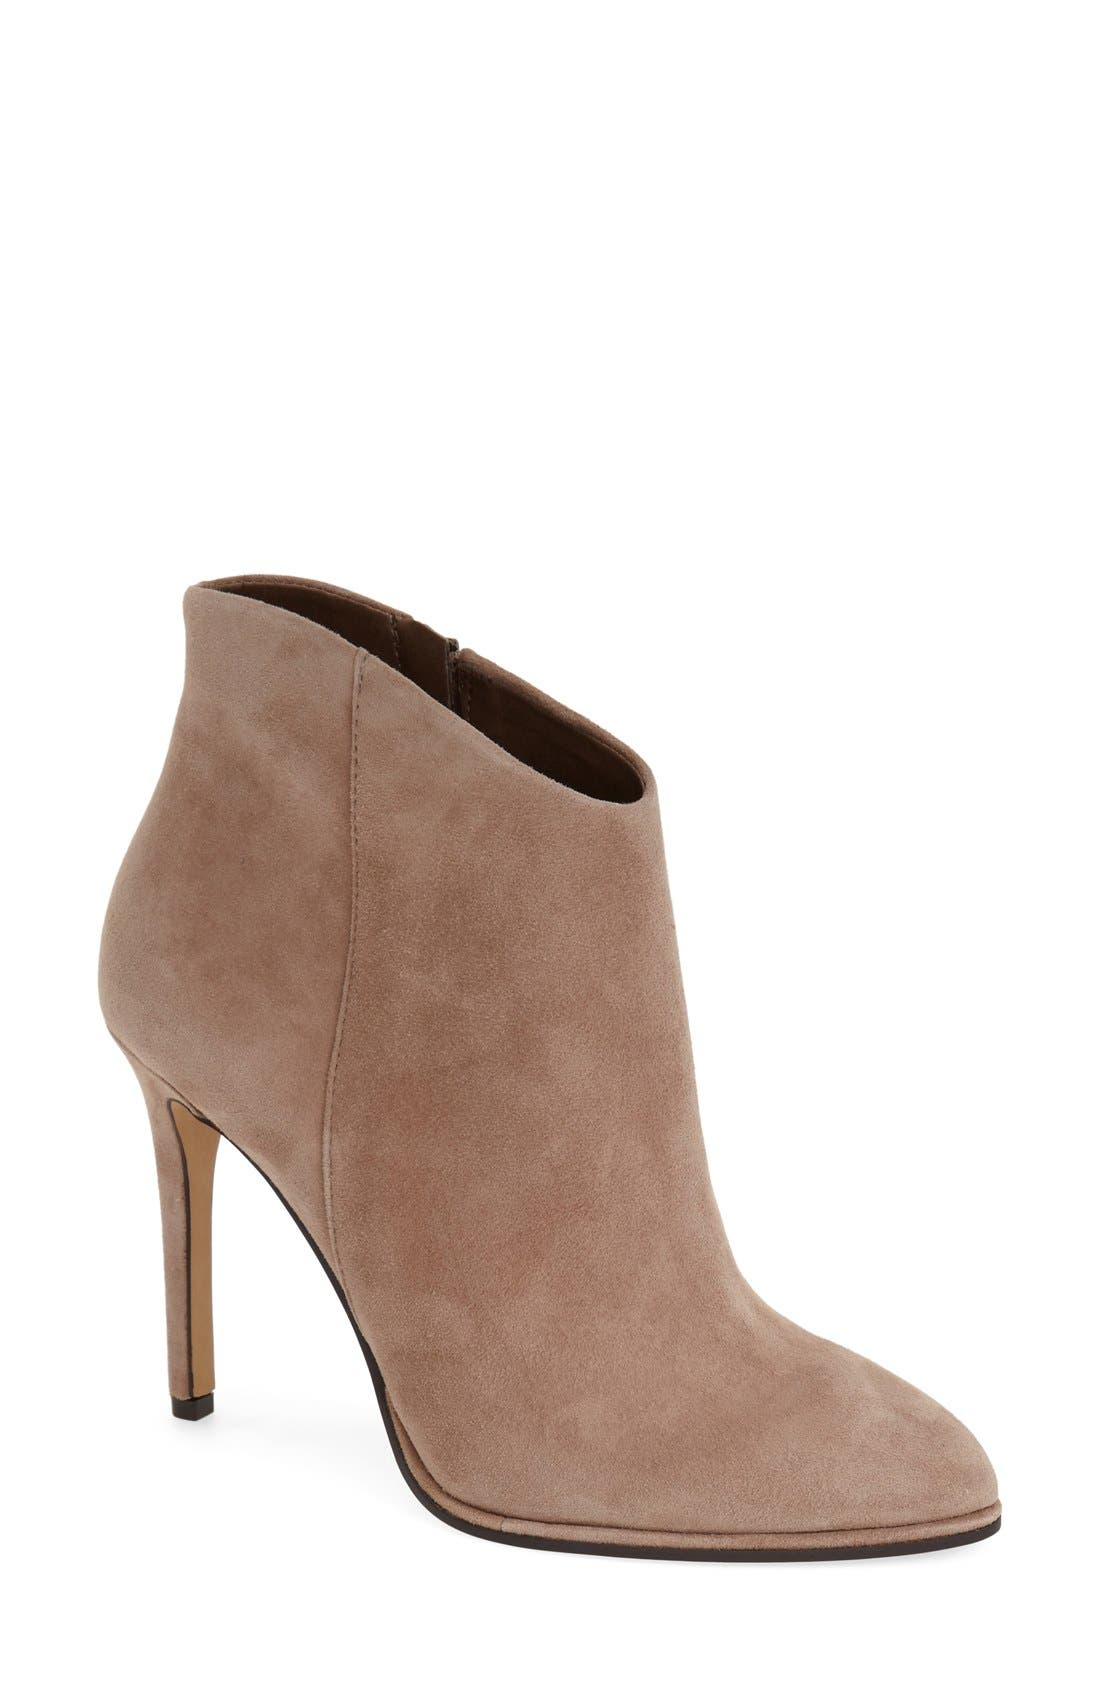 Alternate Image 1 Selected - Vince Camuto 'Lorenza' Pointy Toe Bootie (Women)